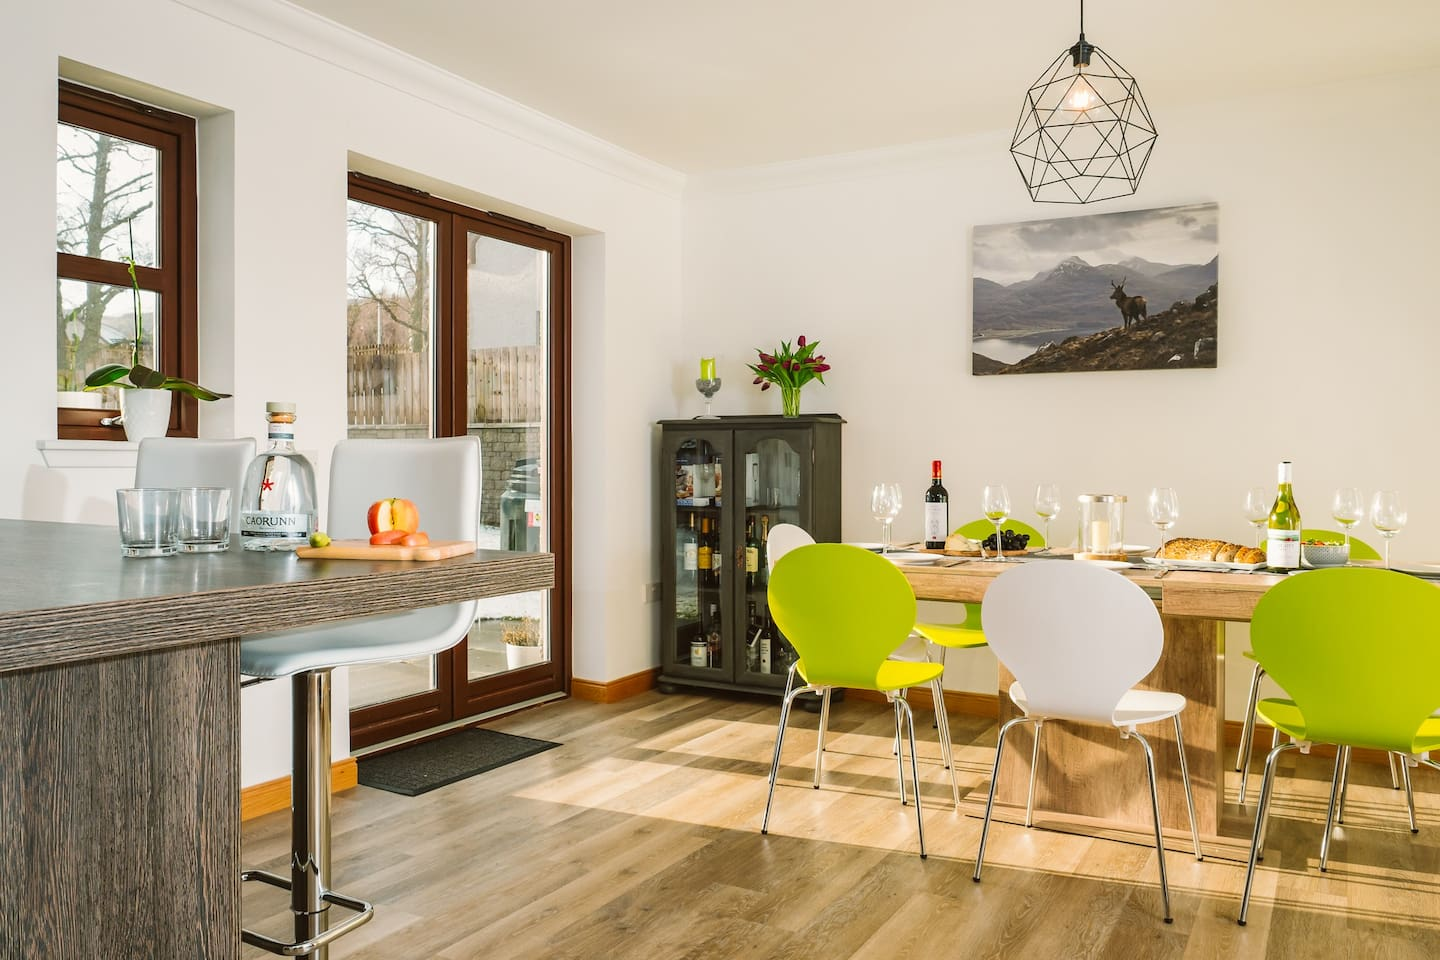 Fabulous sociable kitchen-diner with breakfast bar.